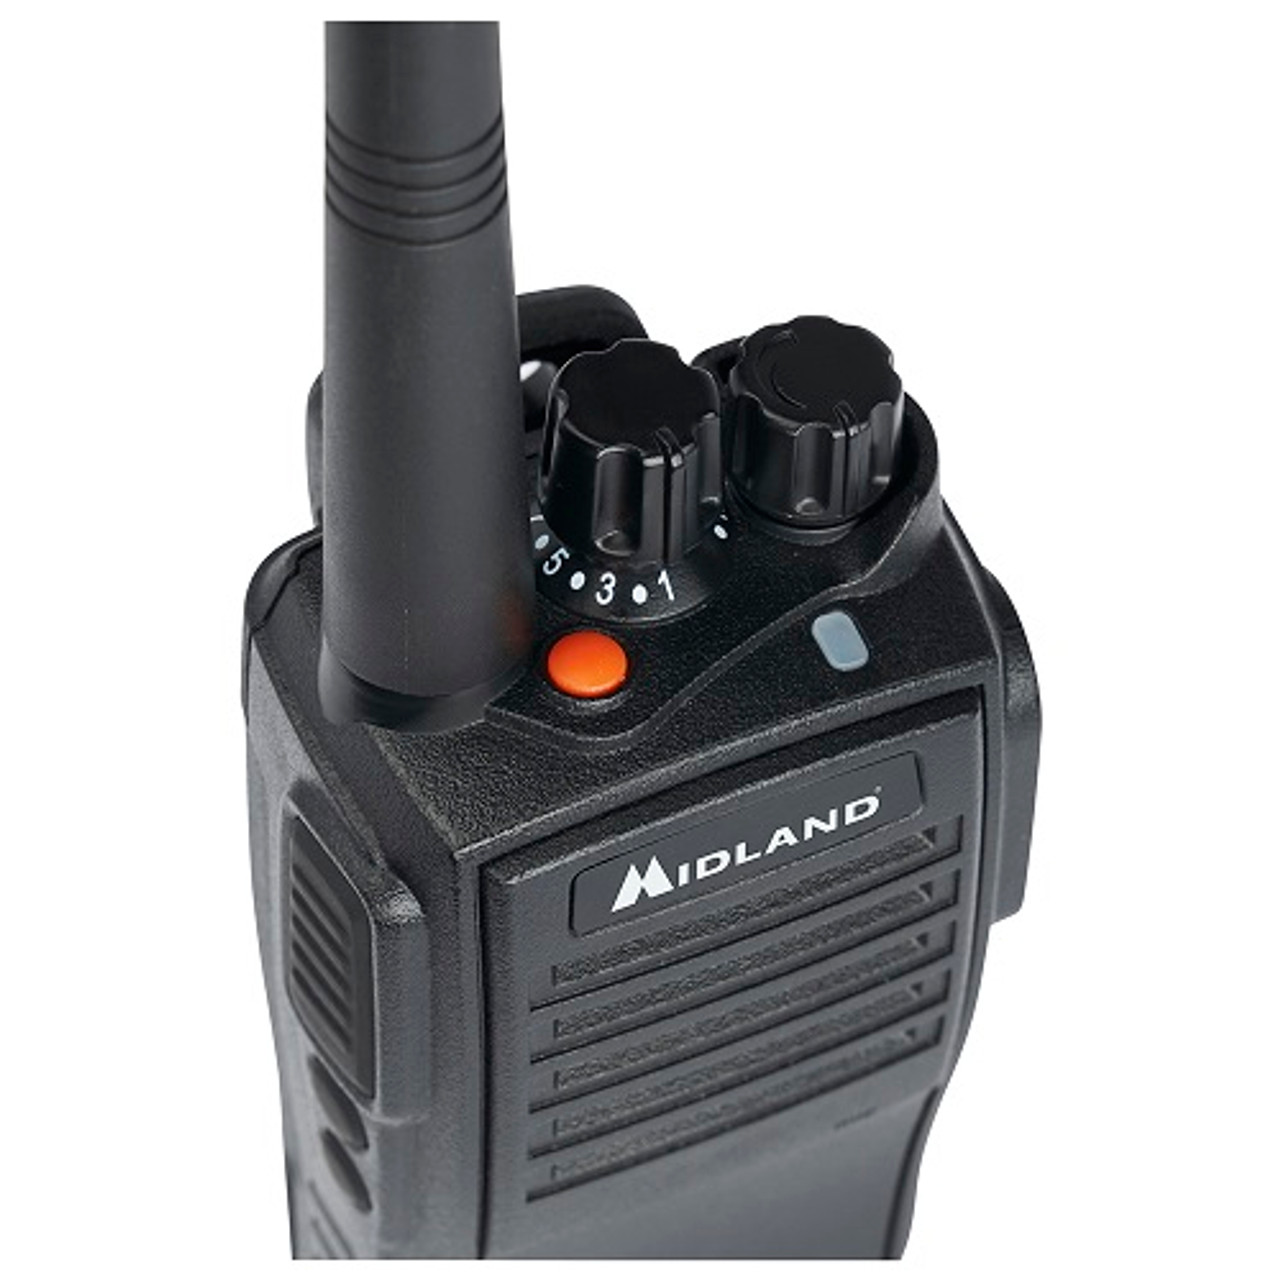 Midland MB400 UHF Two Way Radio with Emergency Button